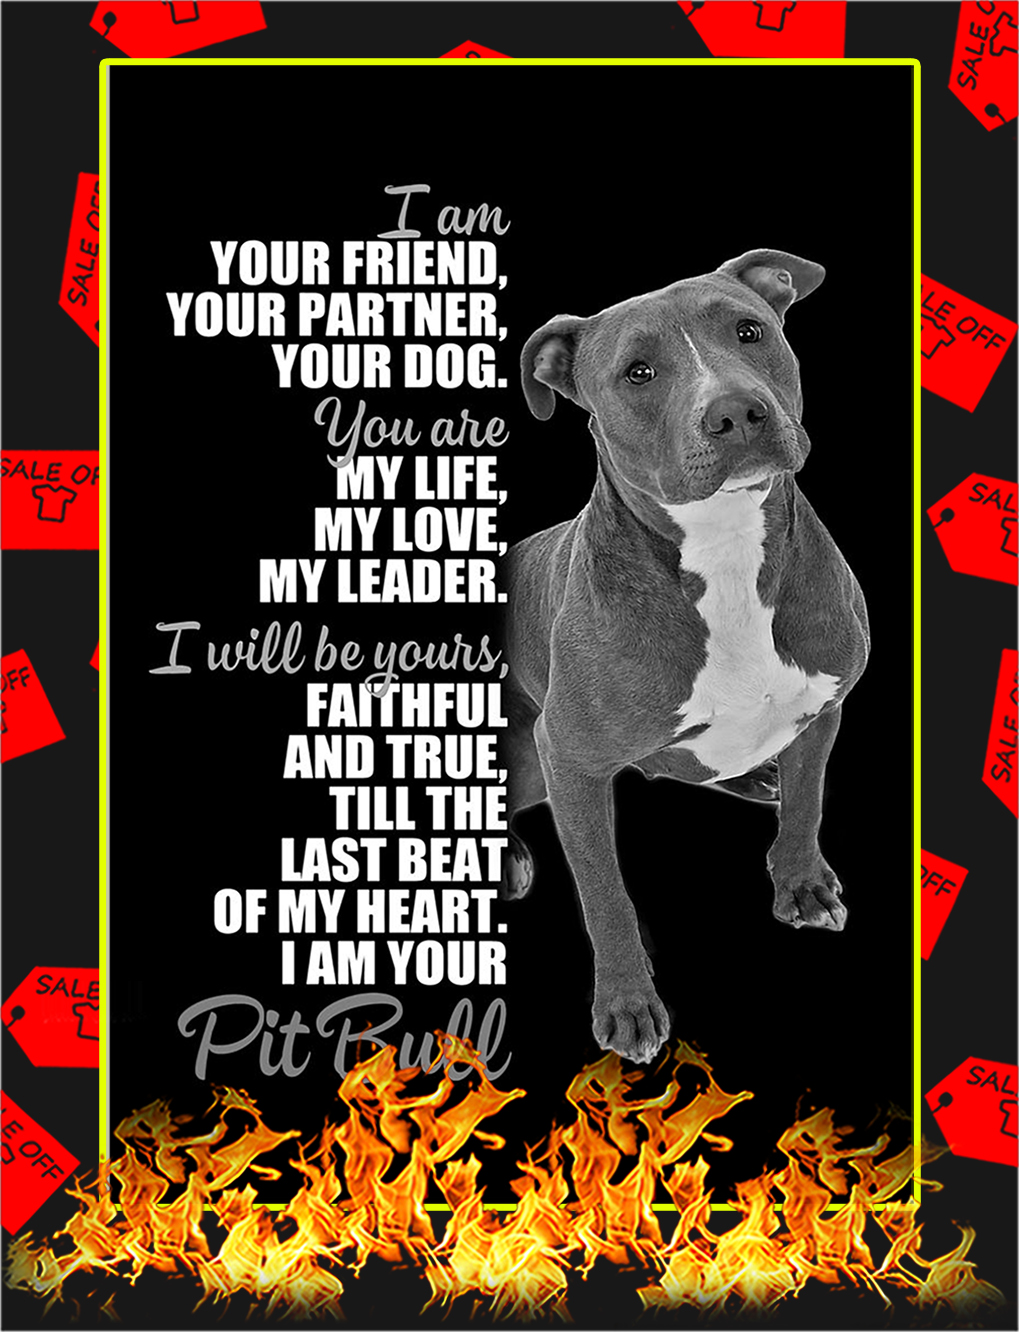 Pit Bull I'm Your Friend Poster - A2Pit Bull I'm Your Friend Poster - A2